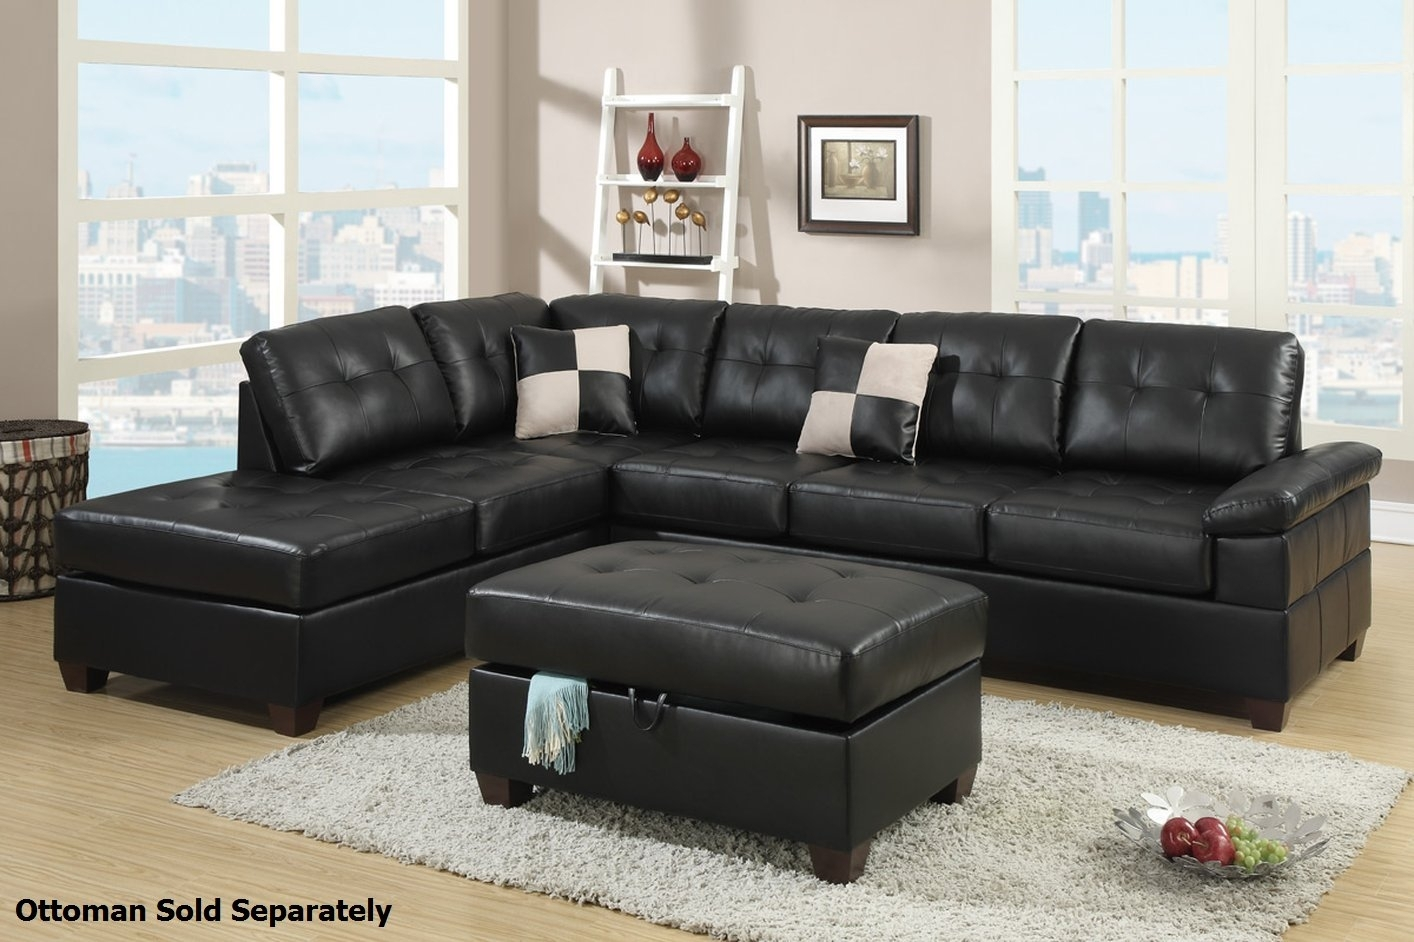 Beautiful Sectional Sofas Rooms To Go 77 For Office Sofa Ideas With pertaining to Sectional Sofas at Rooms to Go (Image 1 of 15)